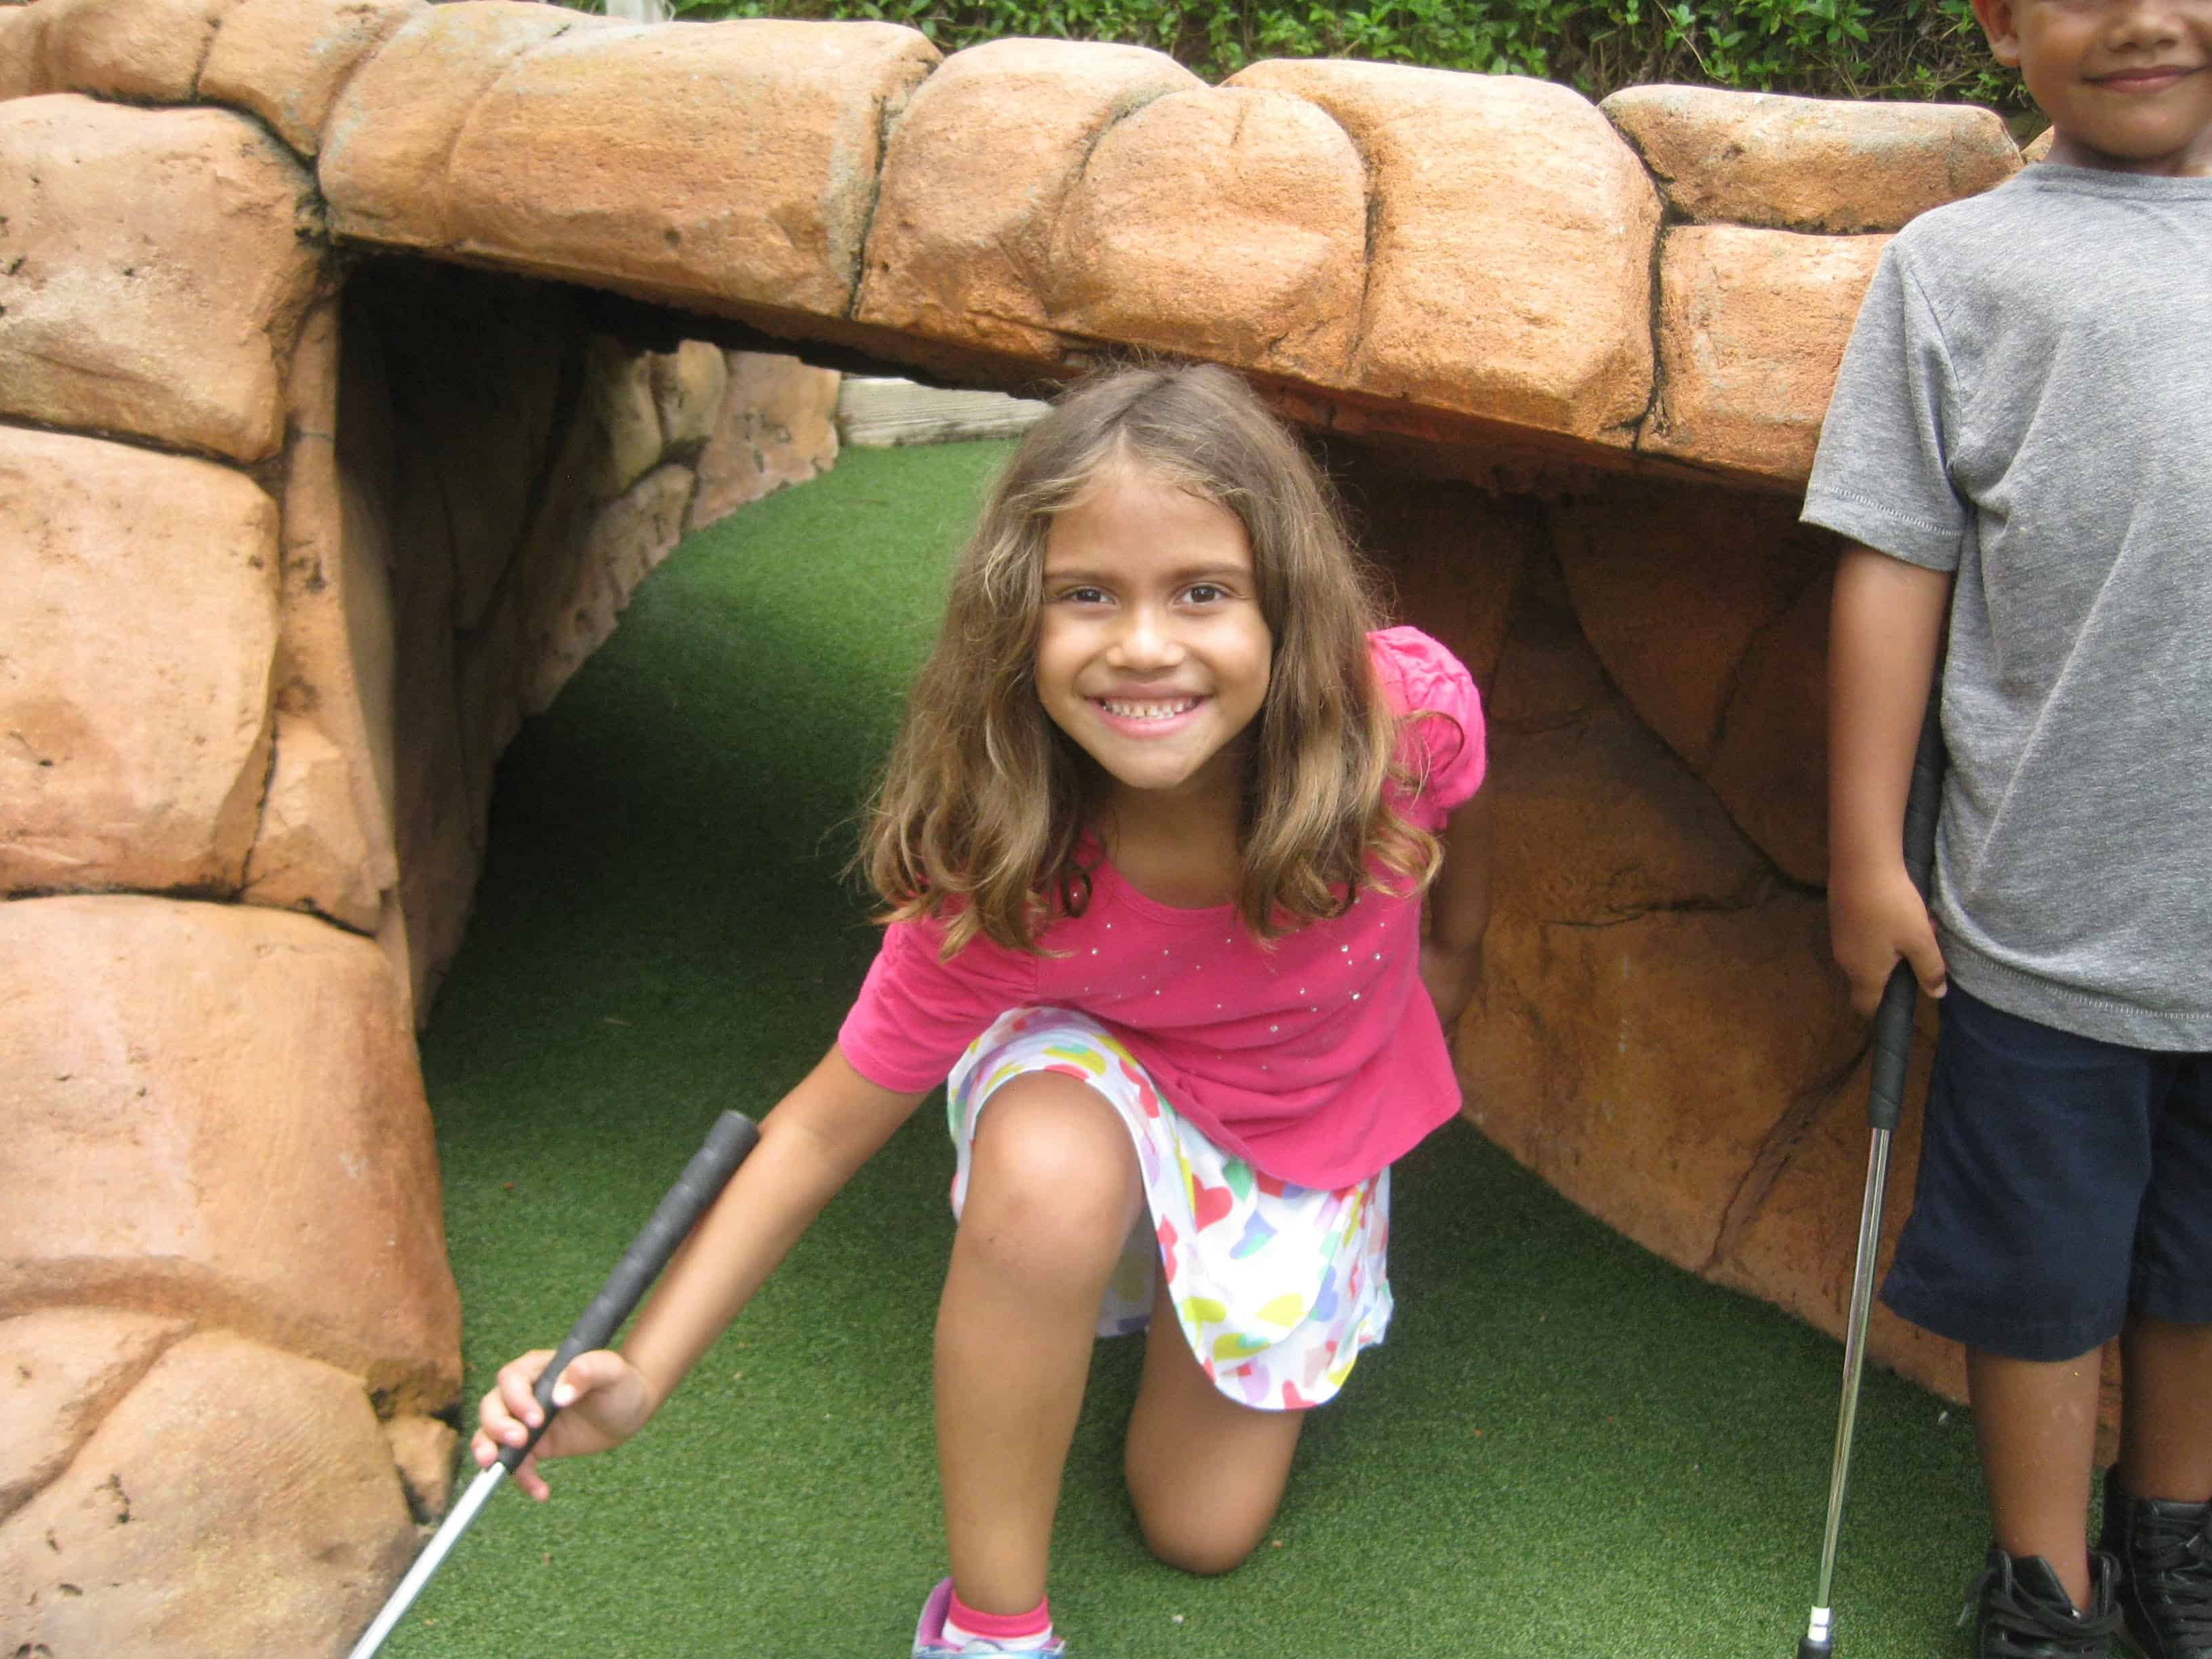 Miniature Golf a Big Hit for Games Week at Summer Camp